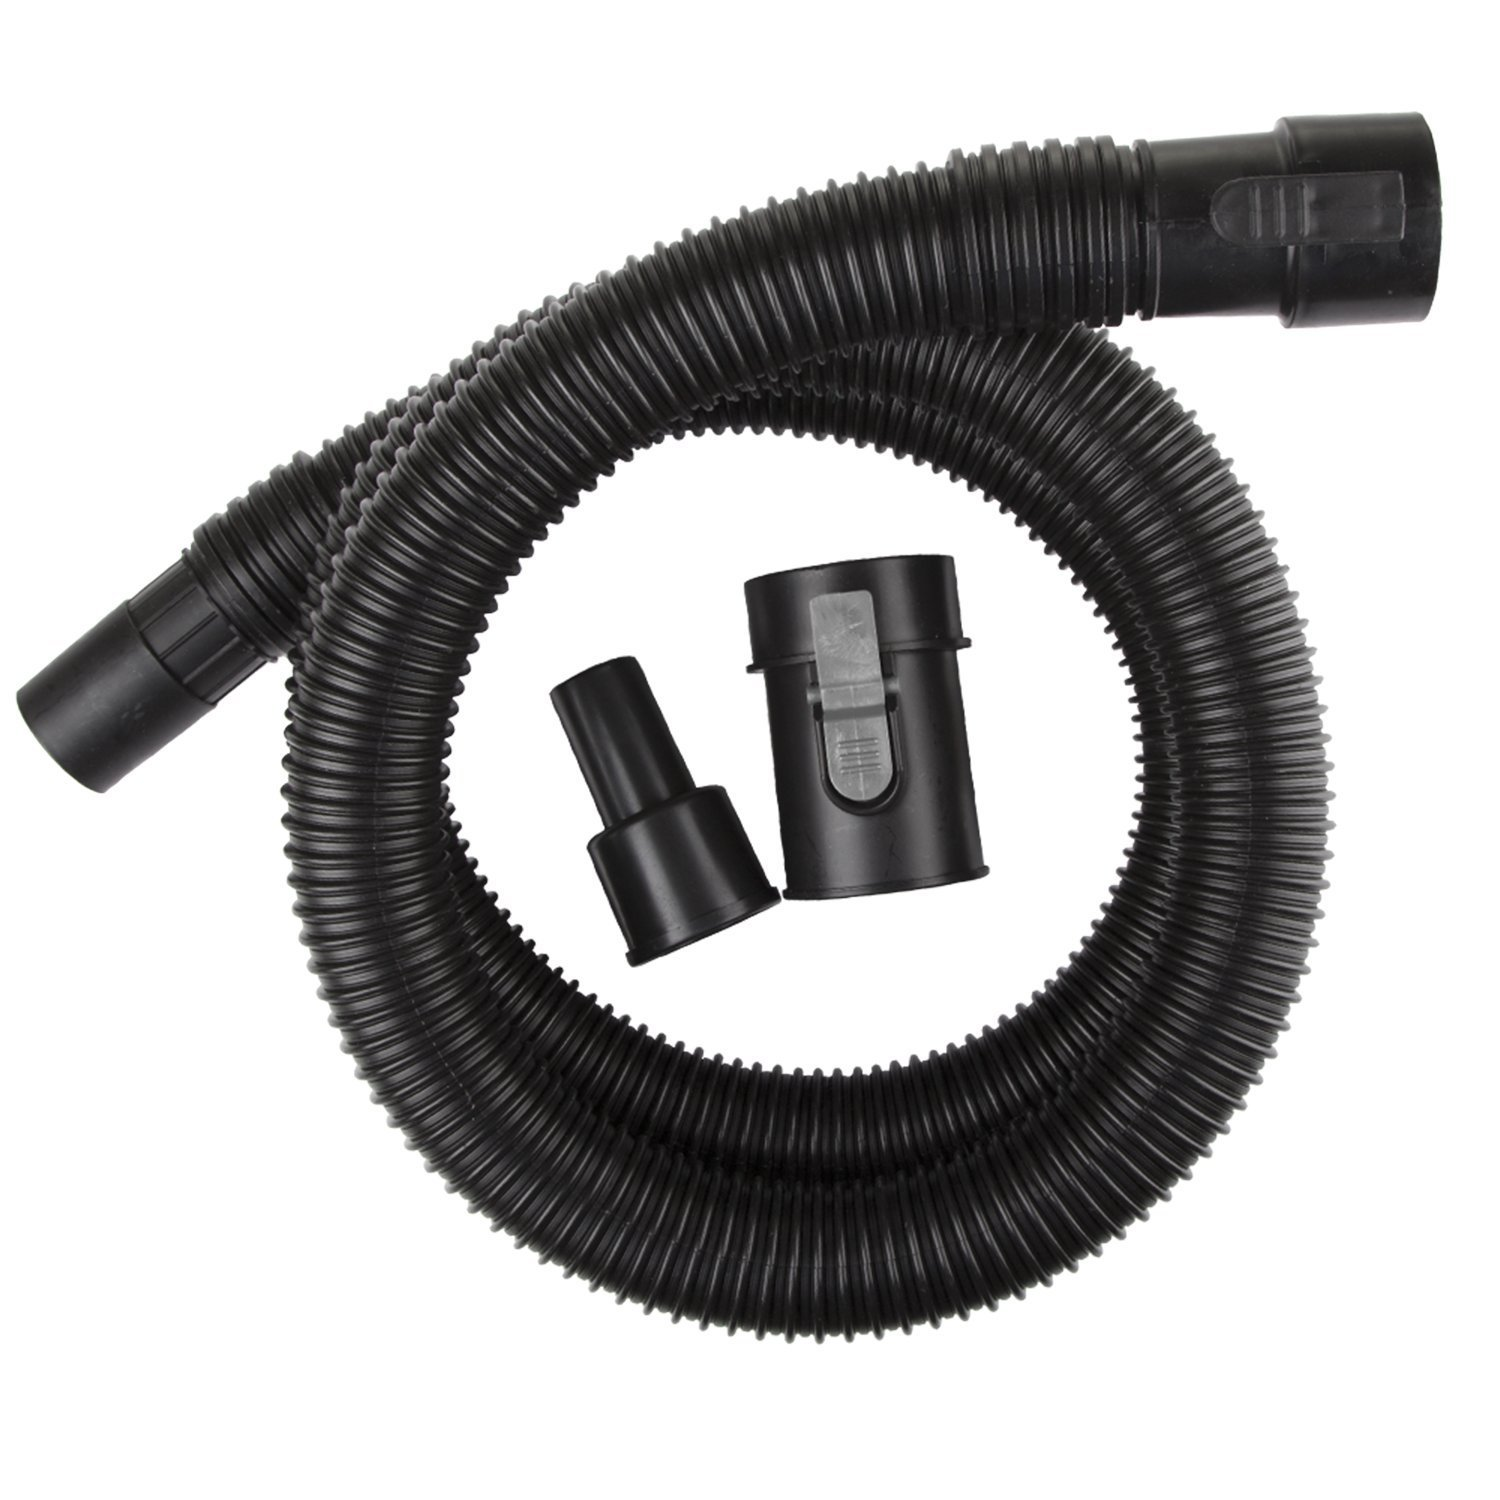 WORKSHOP Wet Dry Vacuum Accessories WS17820A Wet Dry Vacuum Hose, 1-7/8-Inch x 7-Feet Locking Wet Dry Vac Hose for Wet Dry Shop Vacuums..., By WORKSHOP Wet/Dry Vacs Ship from US